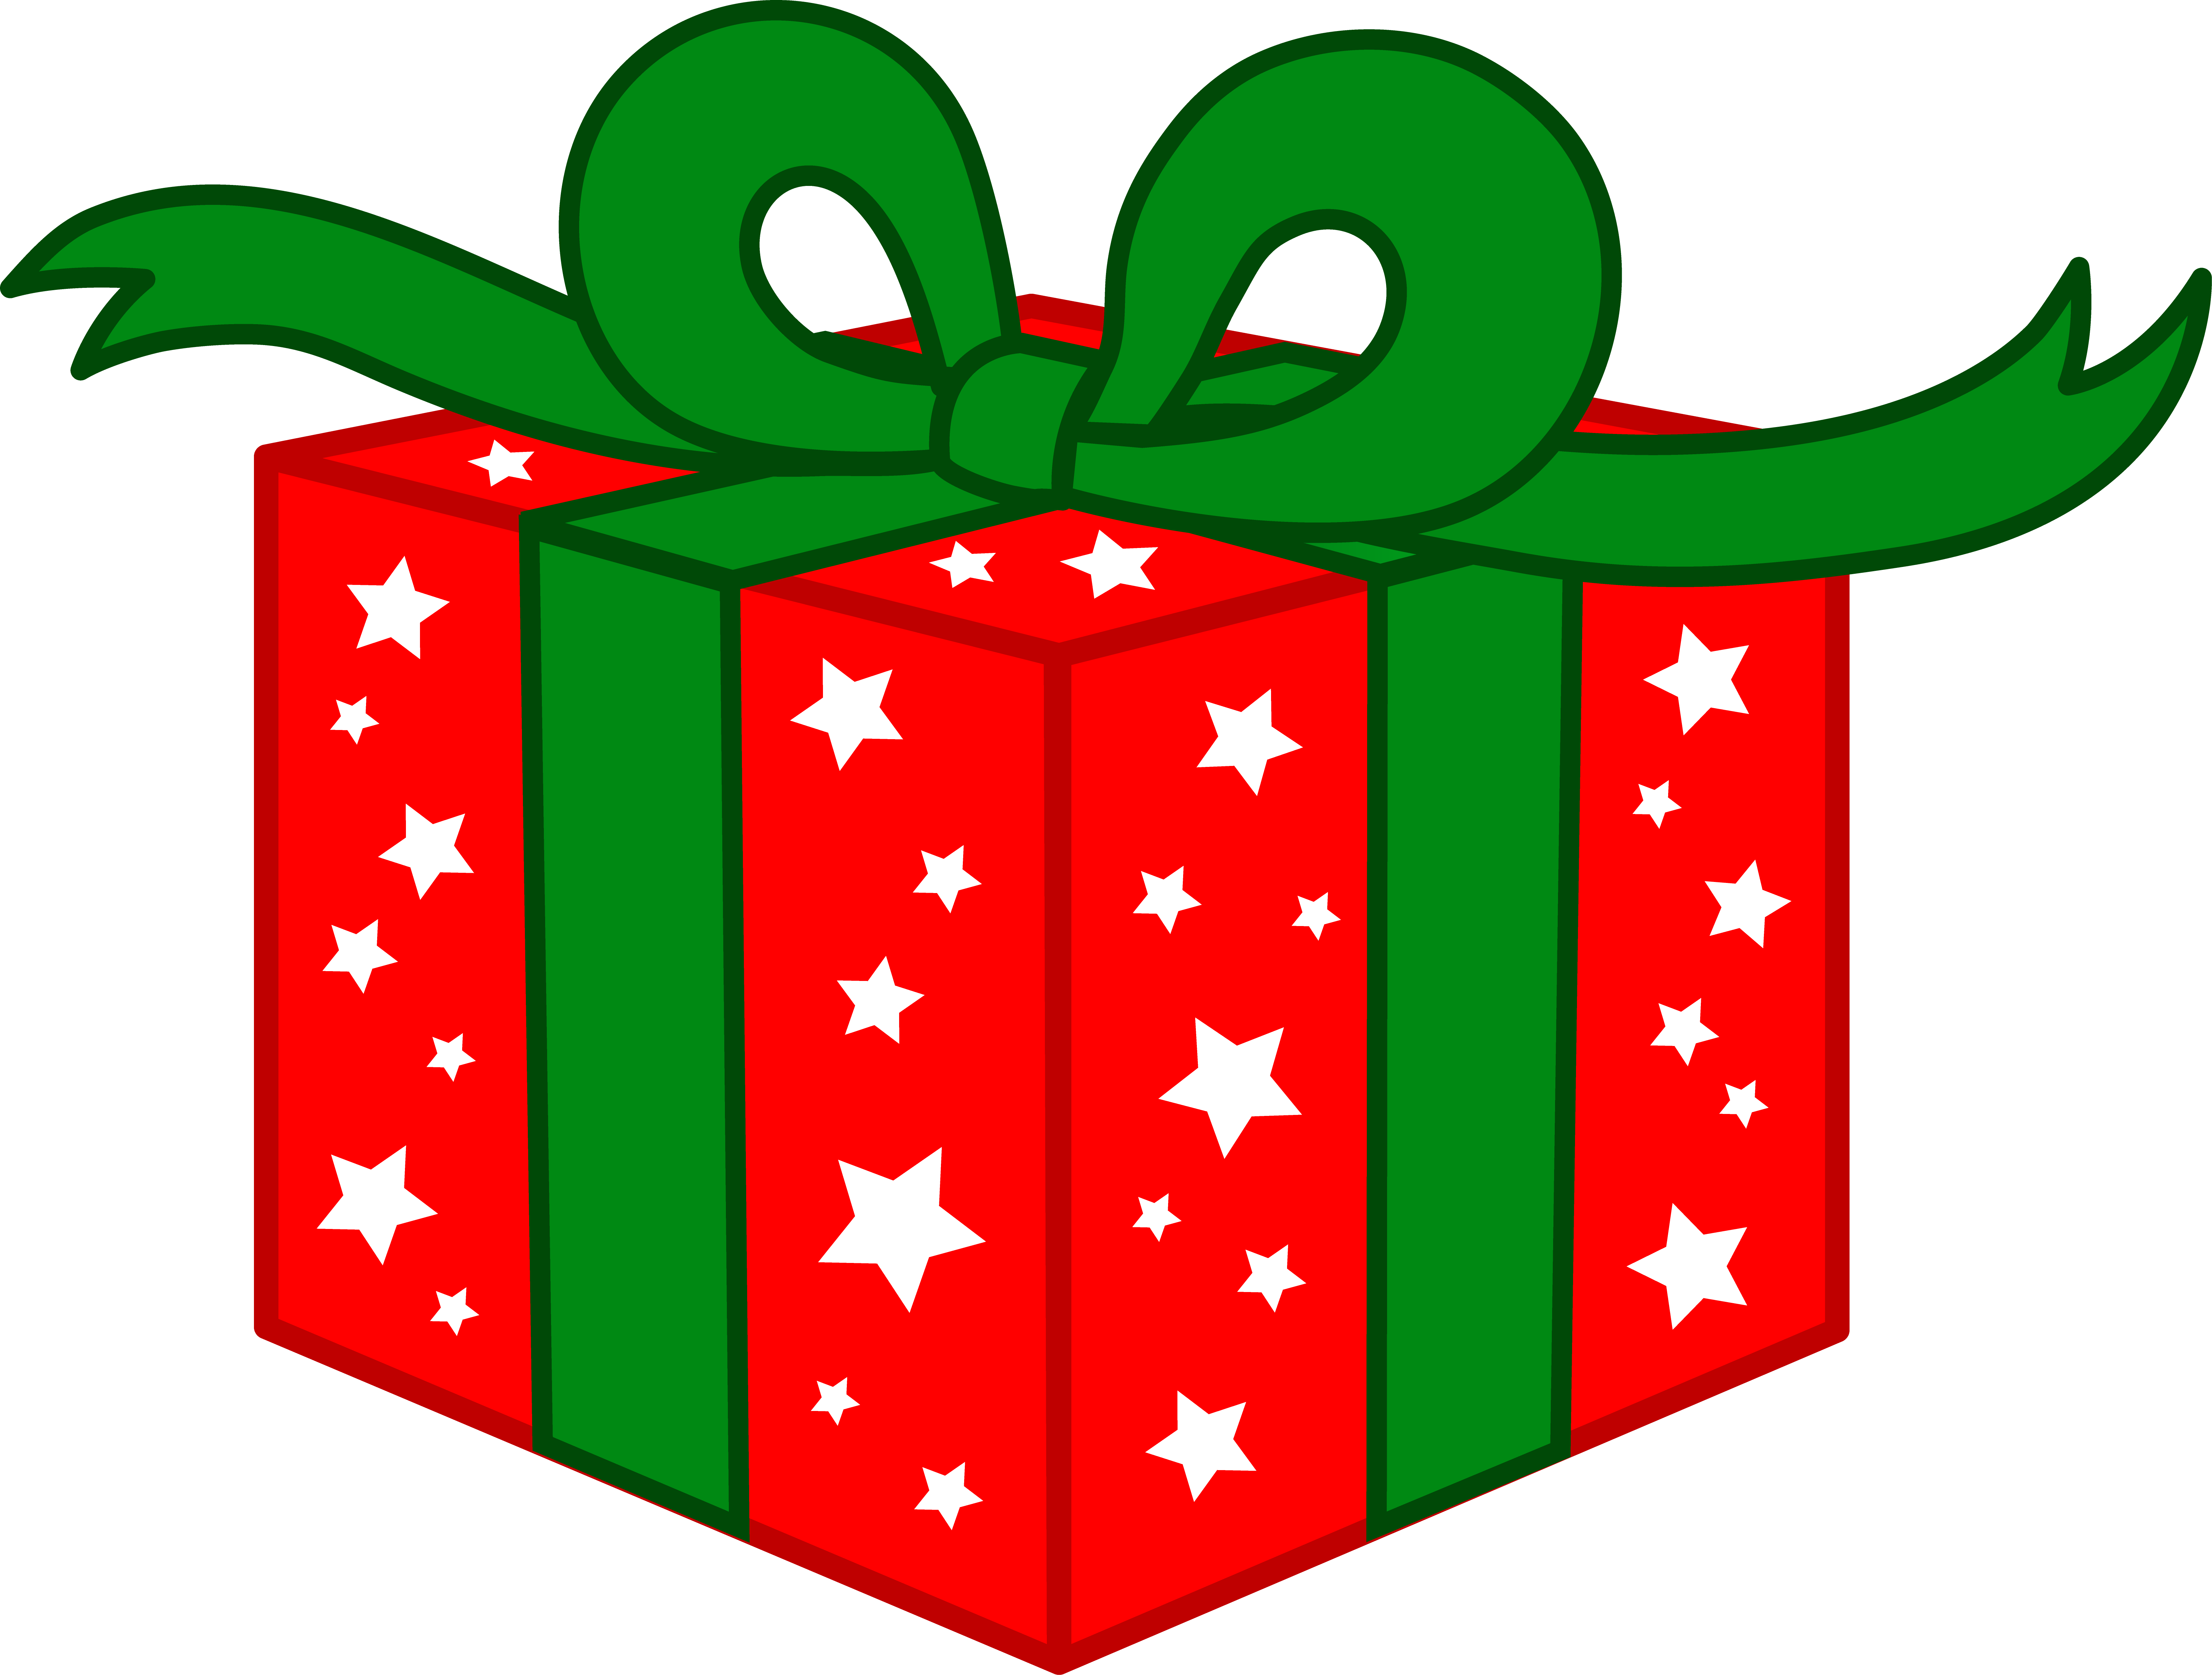 Clip Art Staff Christmas Party Clipart - Clipart Kid